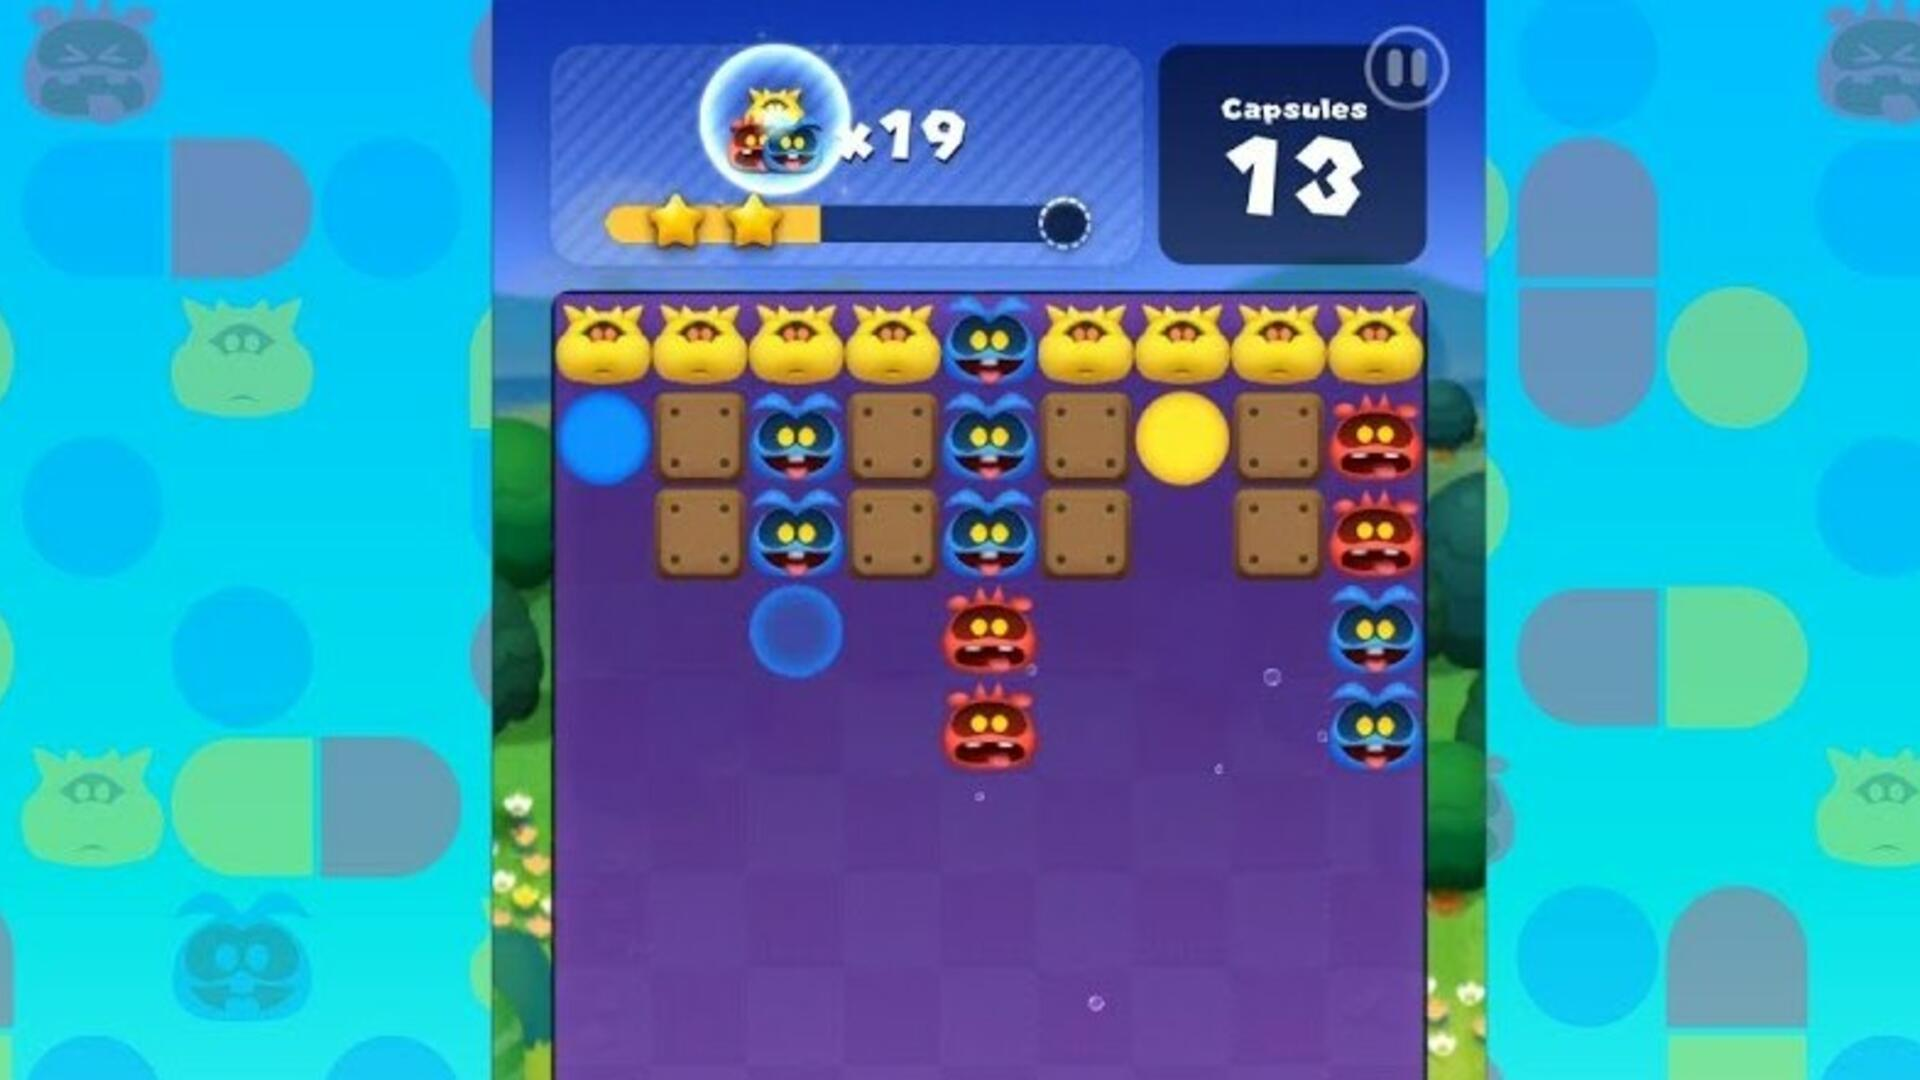 Dr. Mario World Release Date, Platforms, Price - Everything We Know